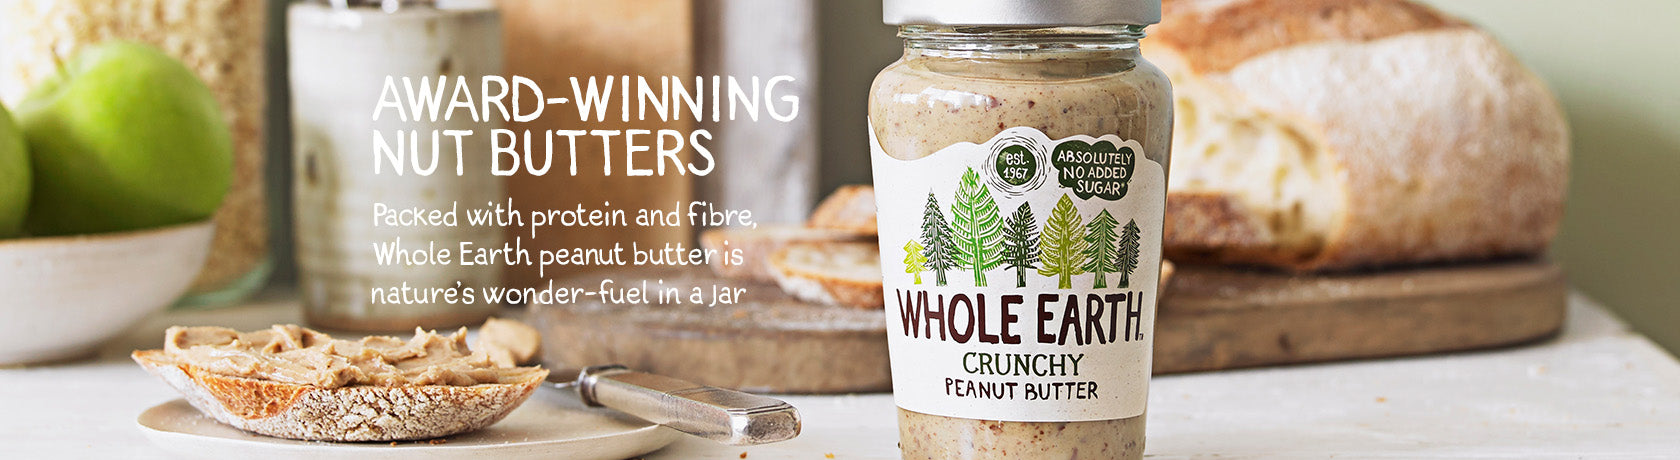 Award-Winning Nut Butters